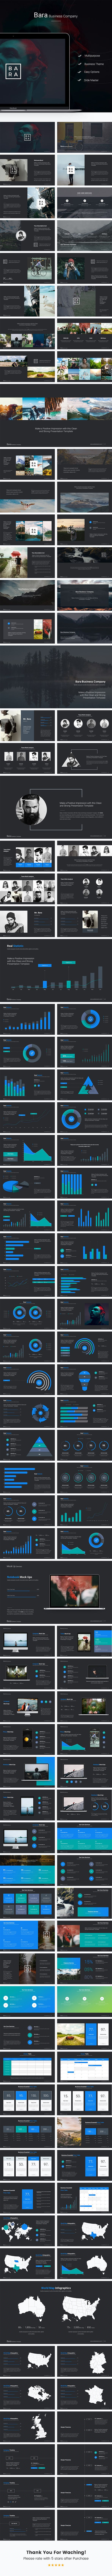 Bara Business Company #Keynote Template - Business Keynote #Templates Download here: https://graphicriver.net/item/bara-business-company-keynote-template/19182477?ref=alena994